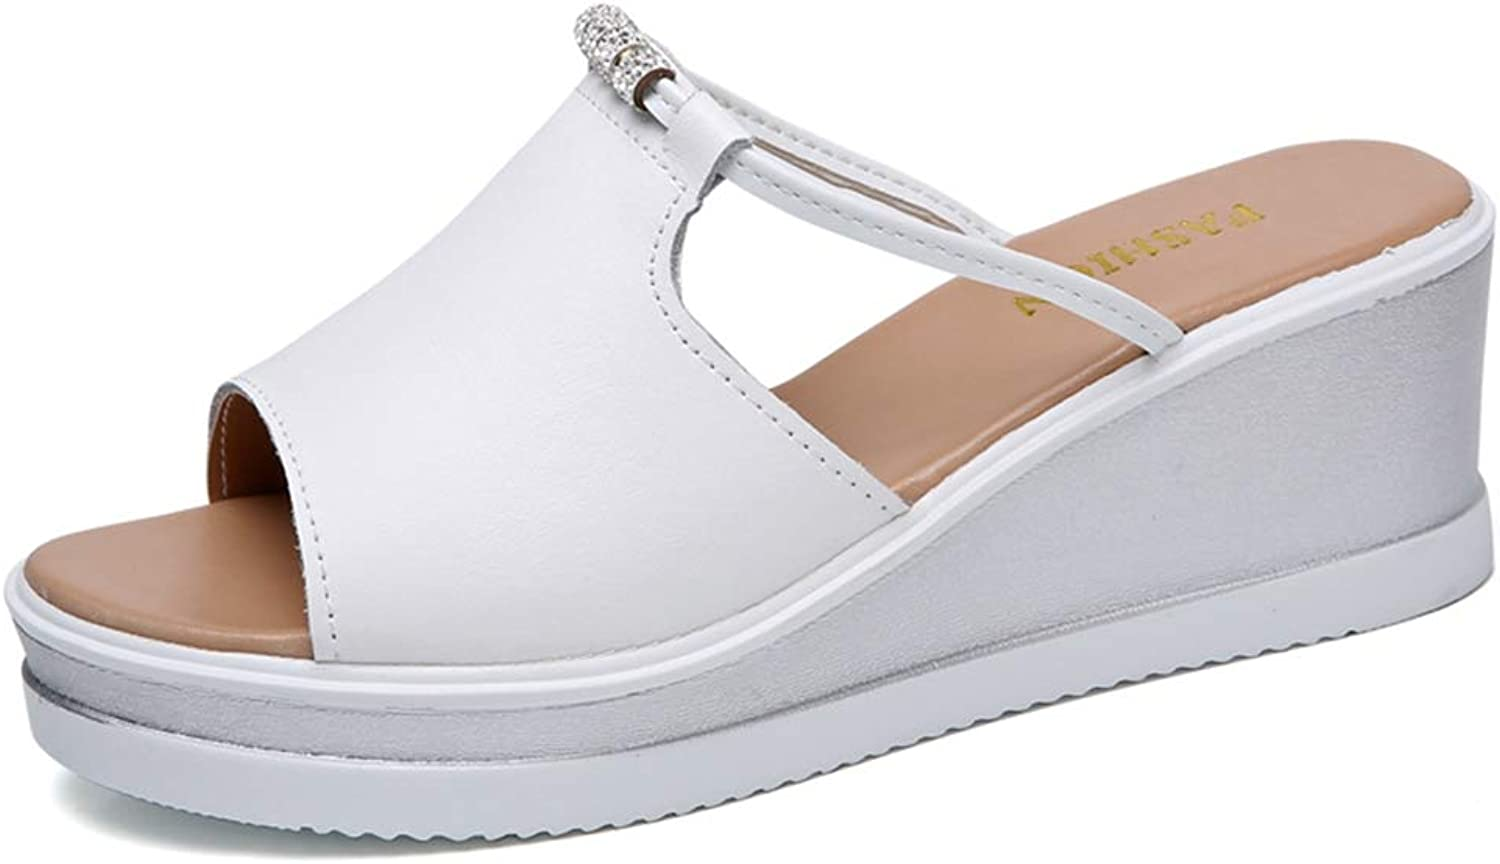 T-JULY Summer Women Slippers Outside Flip Flops Wedges Flat Slides Sandals shoes with Leather Peep Toe Thick High Heel